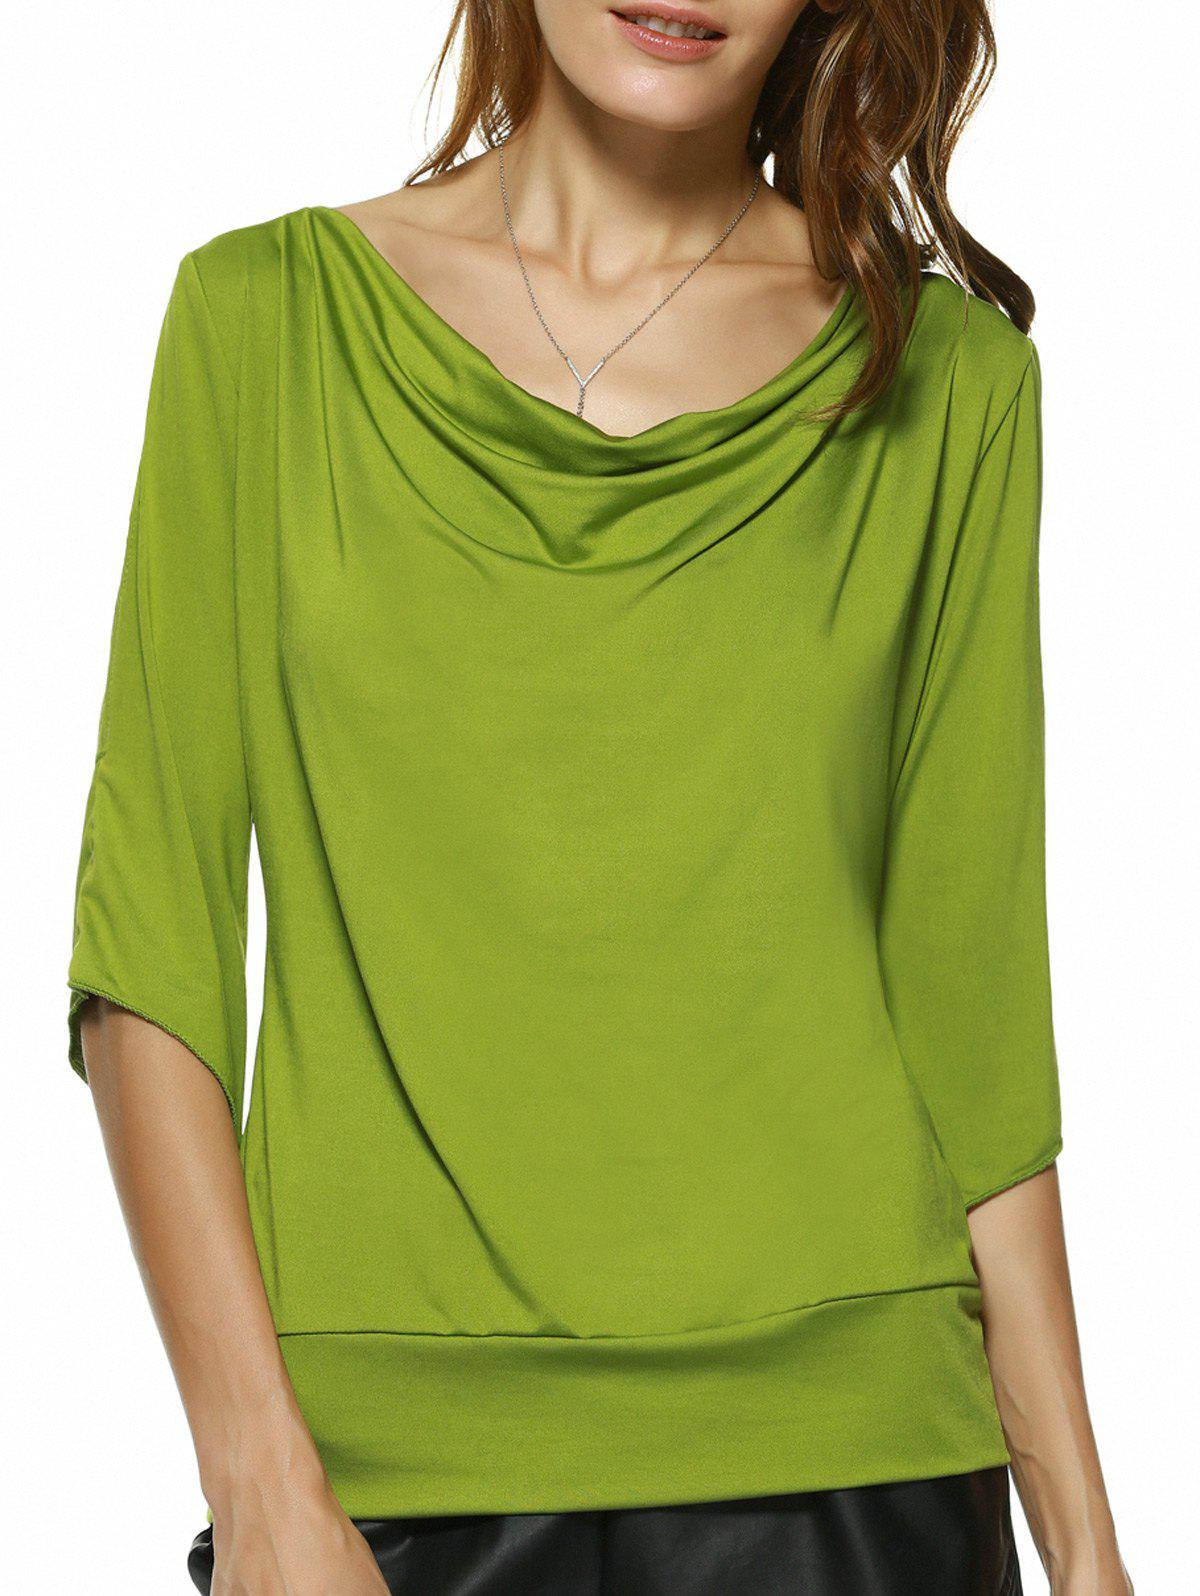 Charming Cowl Neck Solid Color Women's T-Shirt - GREEN XL